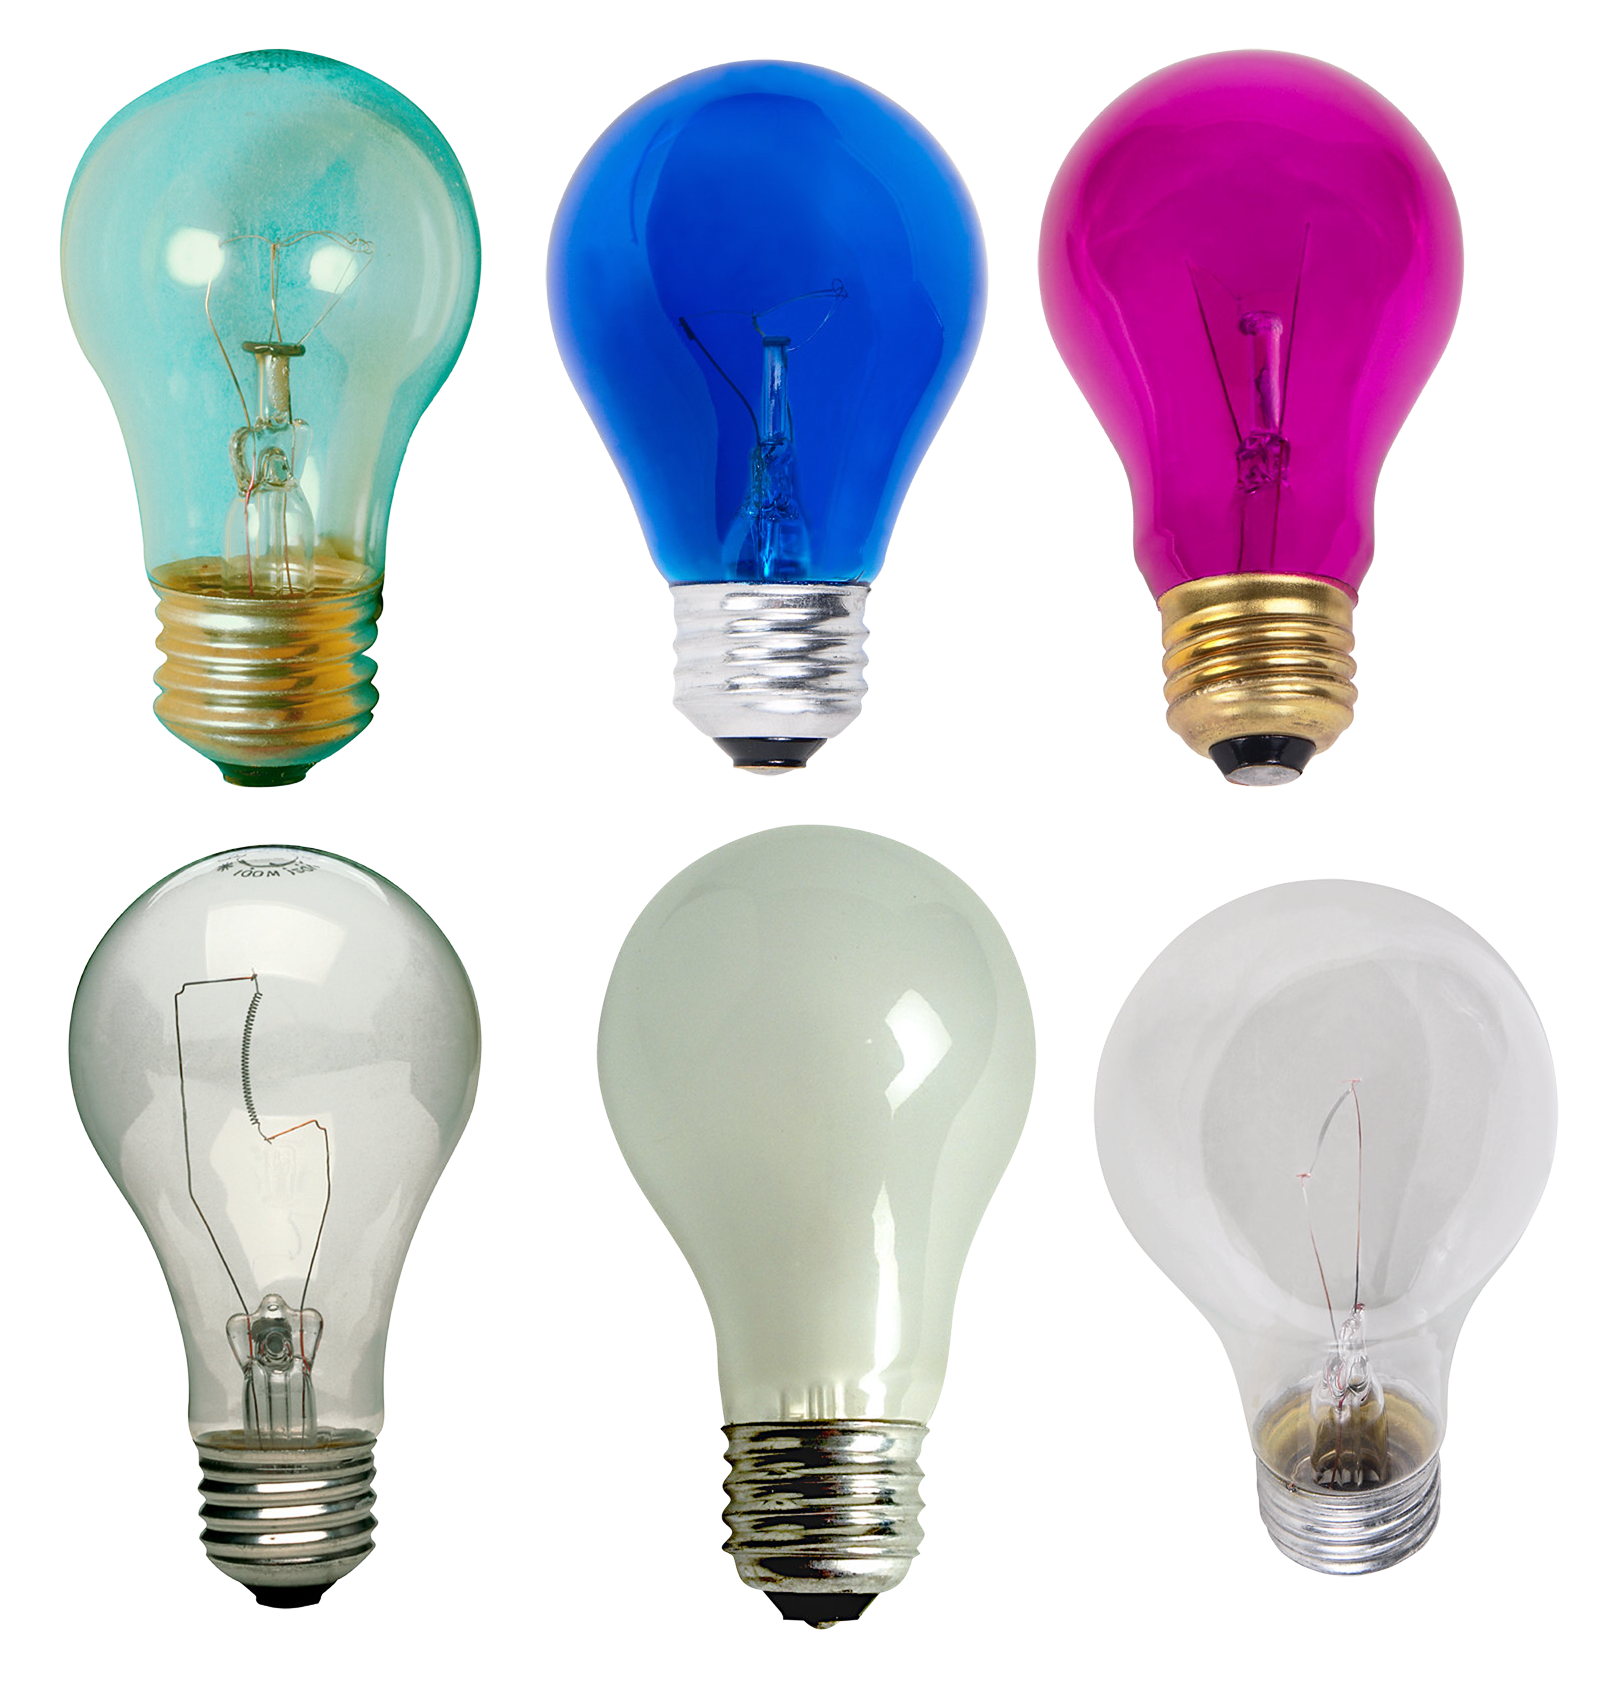 Png images free pictures. Lamp clipart lalten